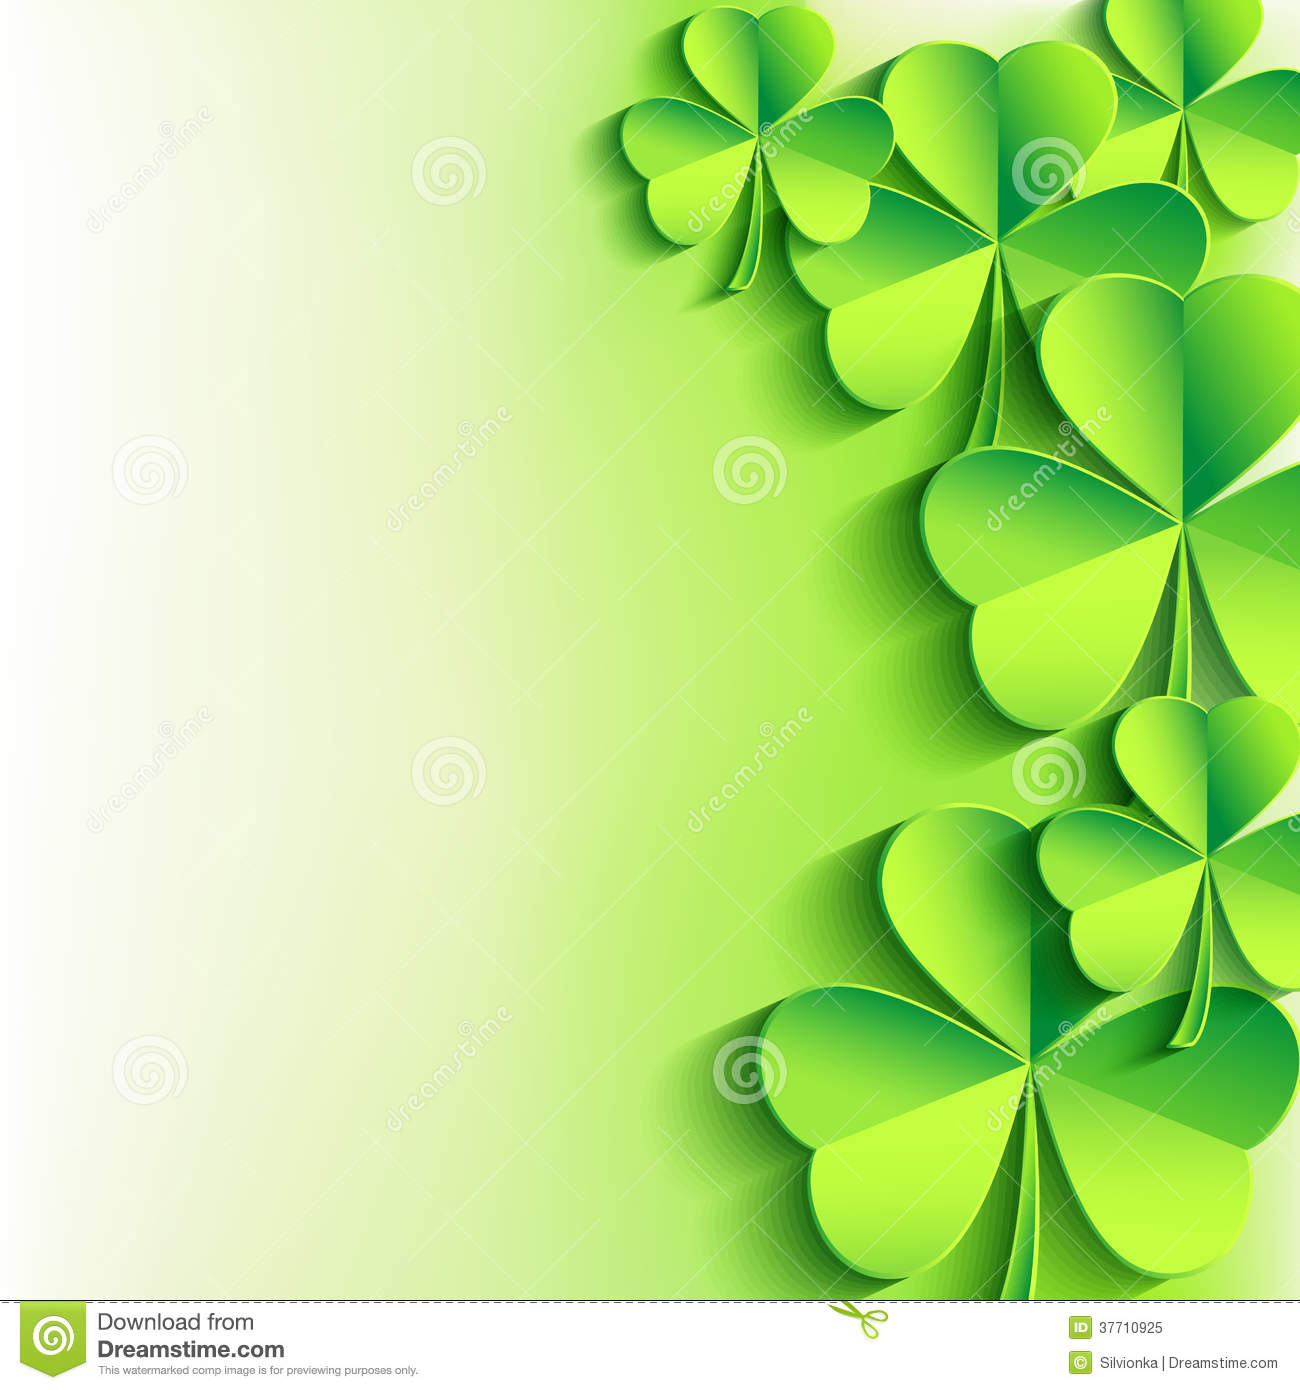 st patricks day wallpaper download